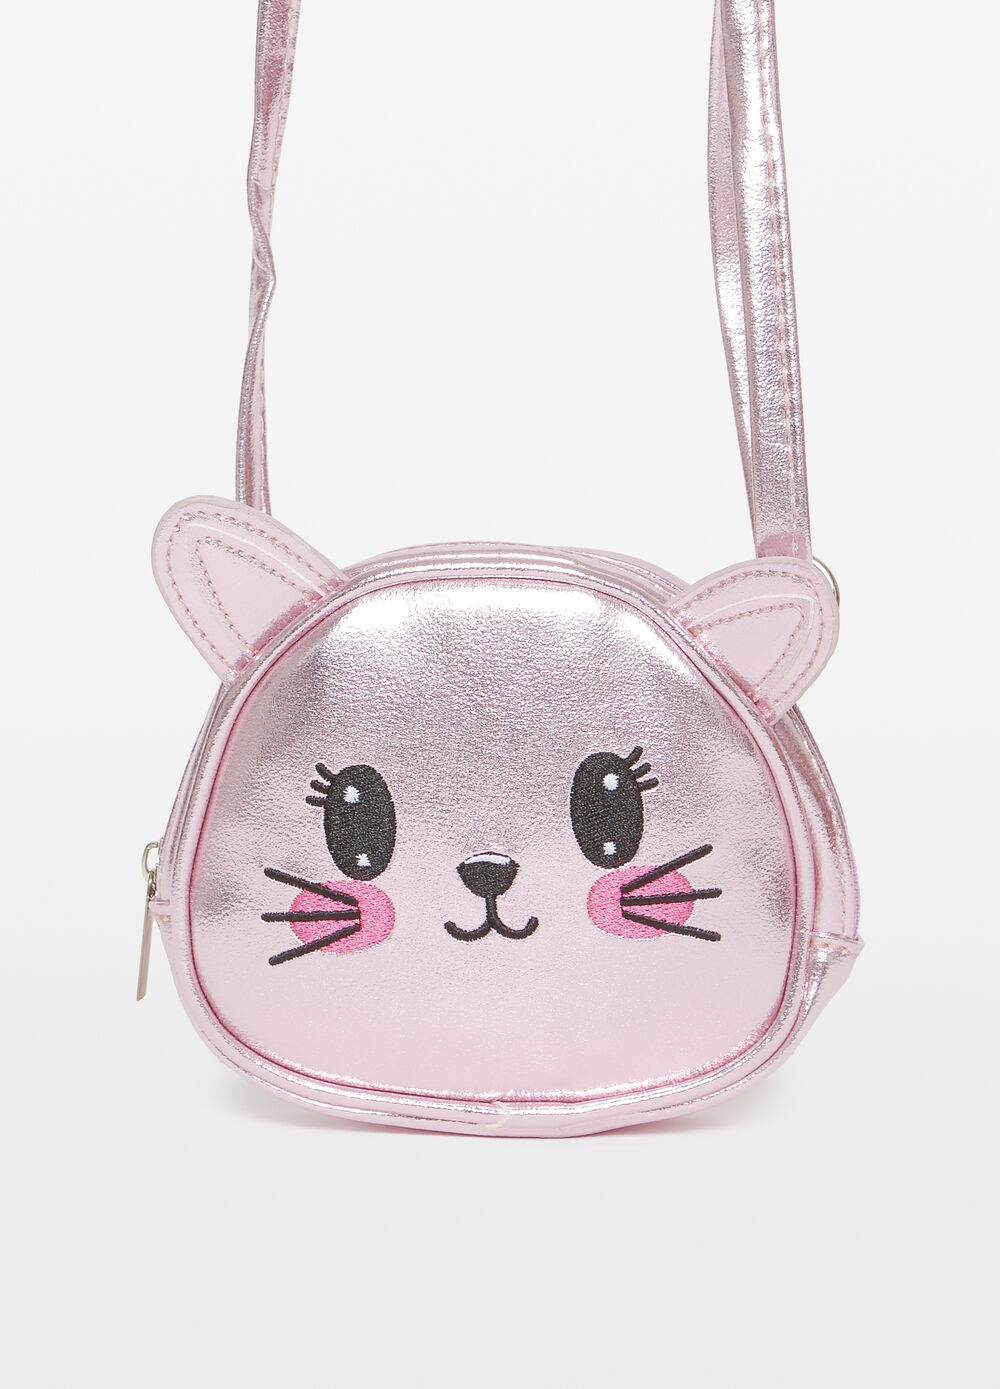 Shoulder bag with kitten ears and embroidery